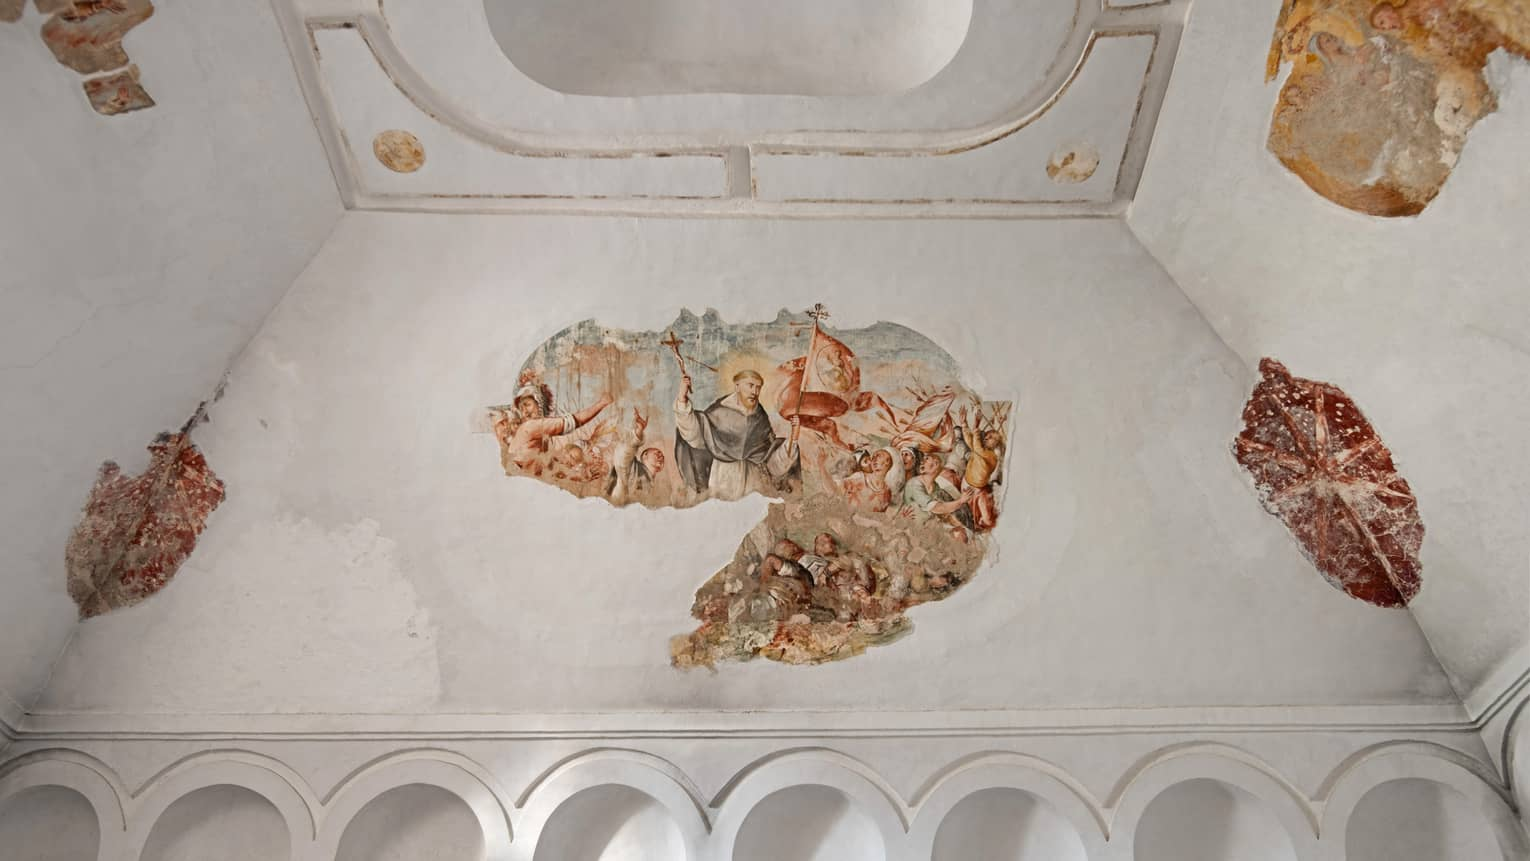 Ancient frescos on a white stone ceiling